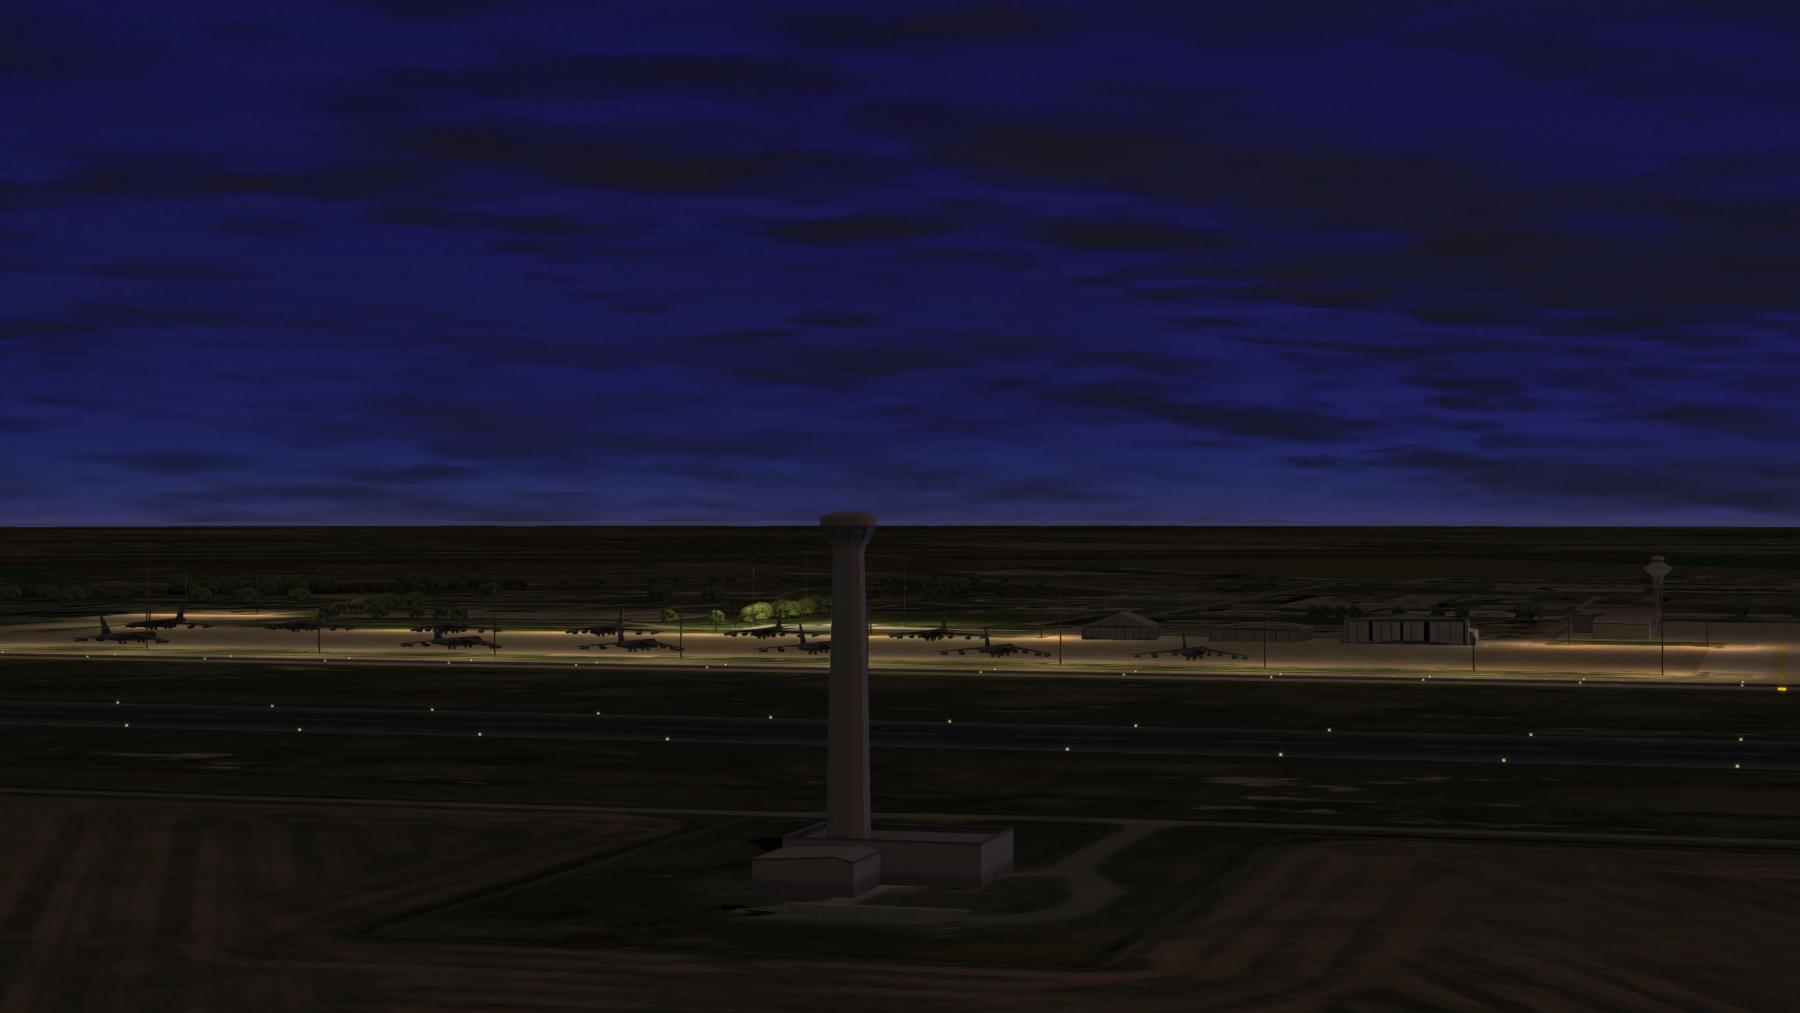 Minot AFB Tower & Parked Aircraft : Night